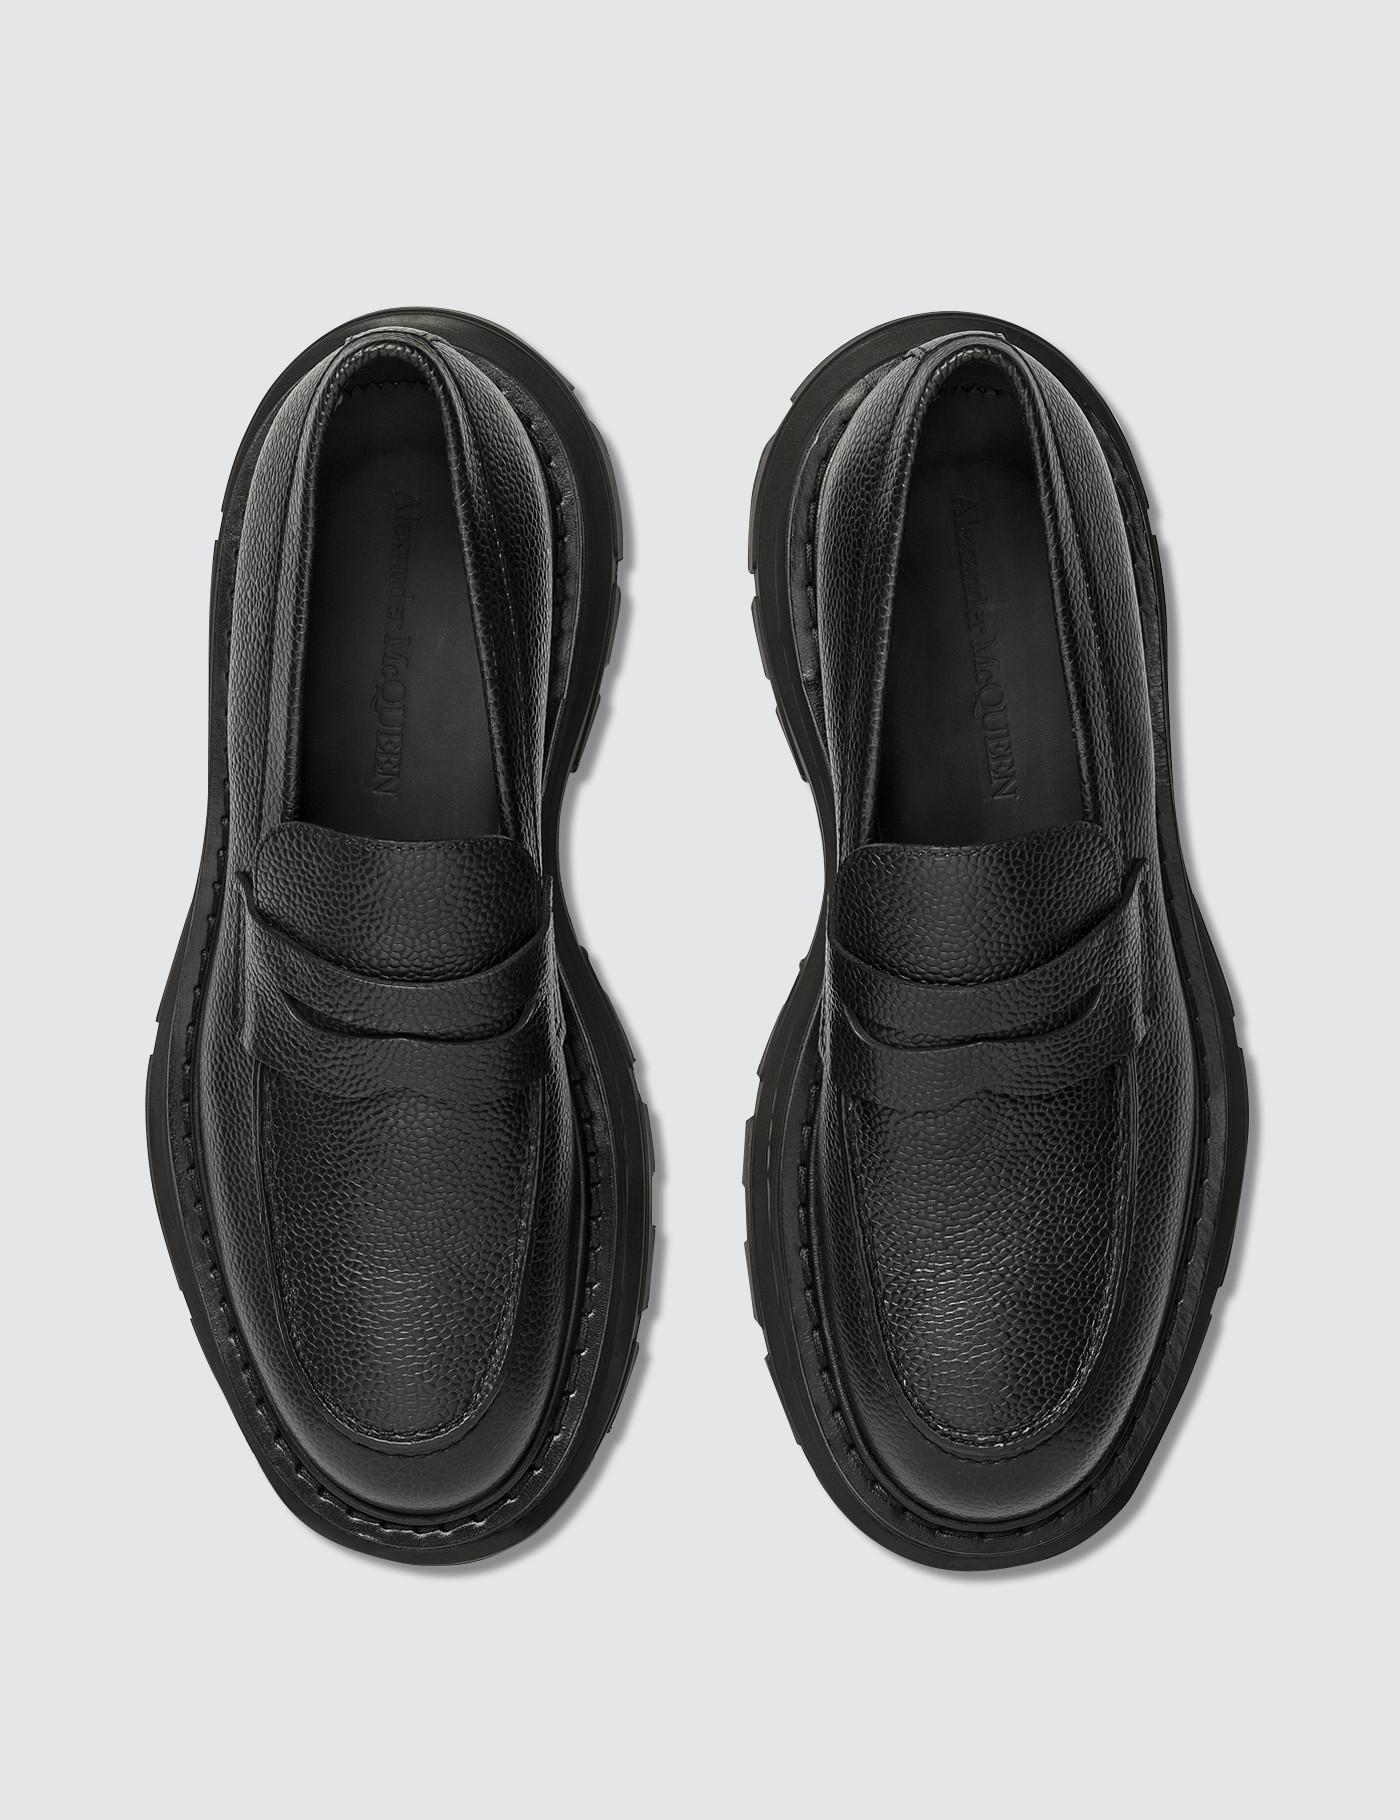 0540ea8d6f50f Lyst - Alexander Mcqueen Leather Shoes in Black for Men